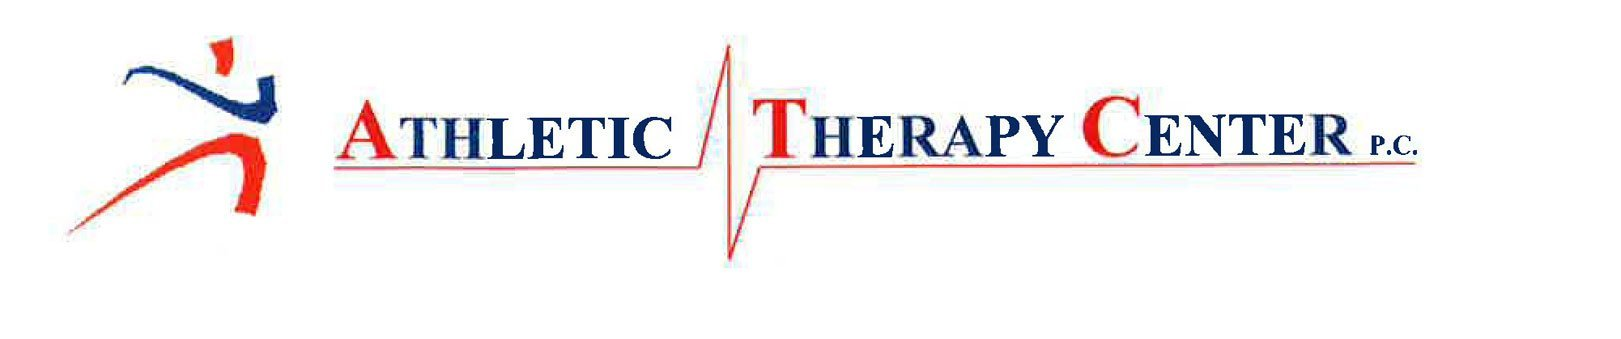 Athletic Therapy Center - logo